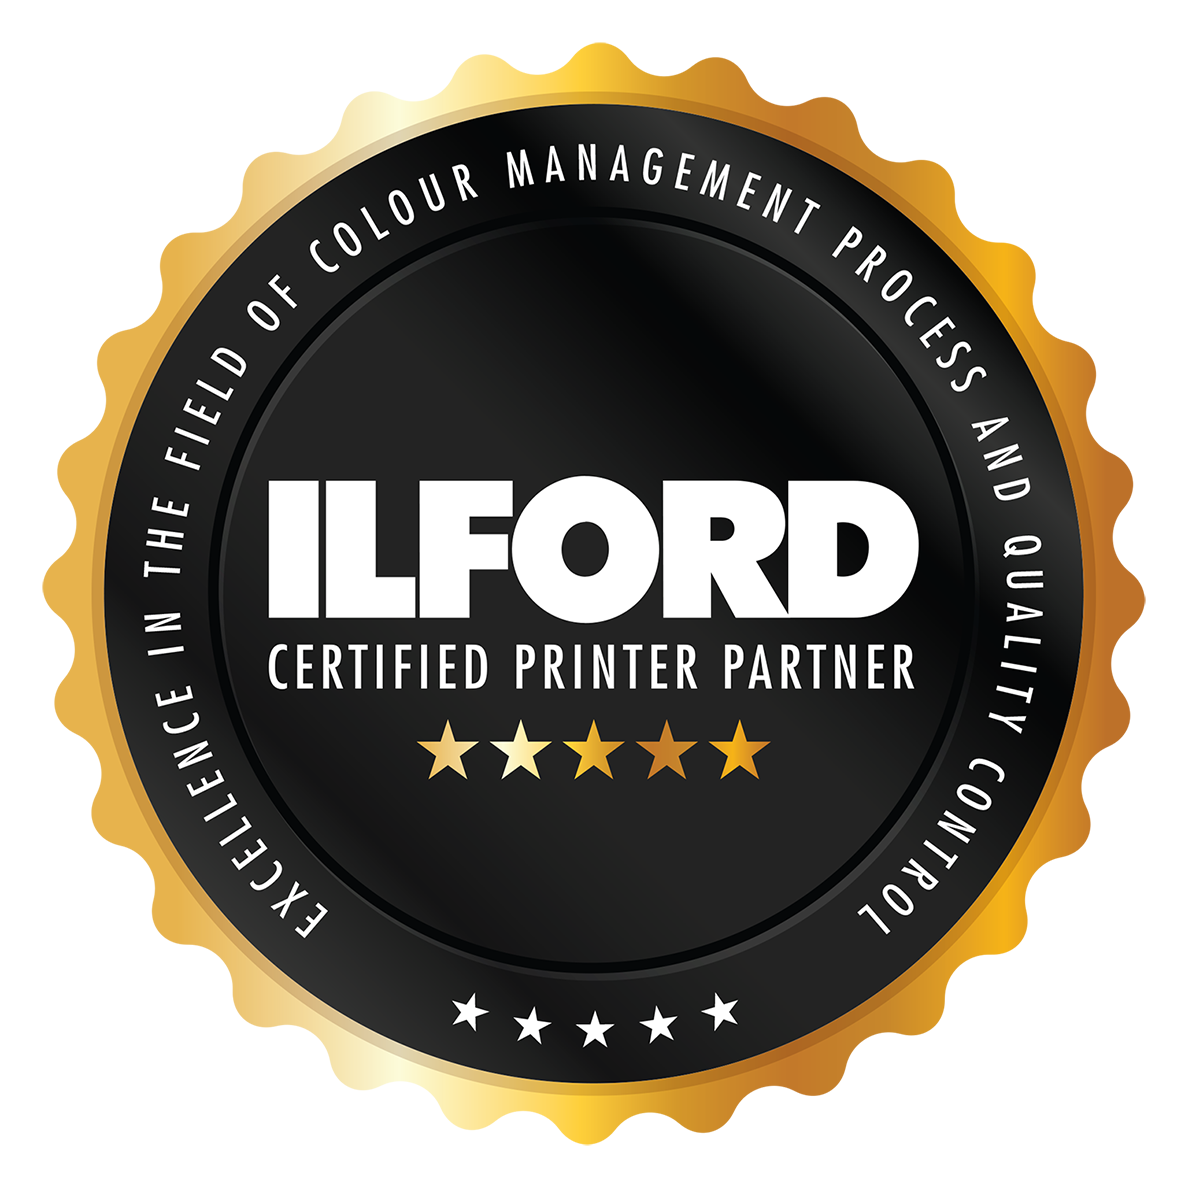 ILFORD - CERTIFIED PRINTER PARTNER BADGE copy